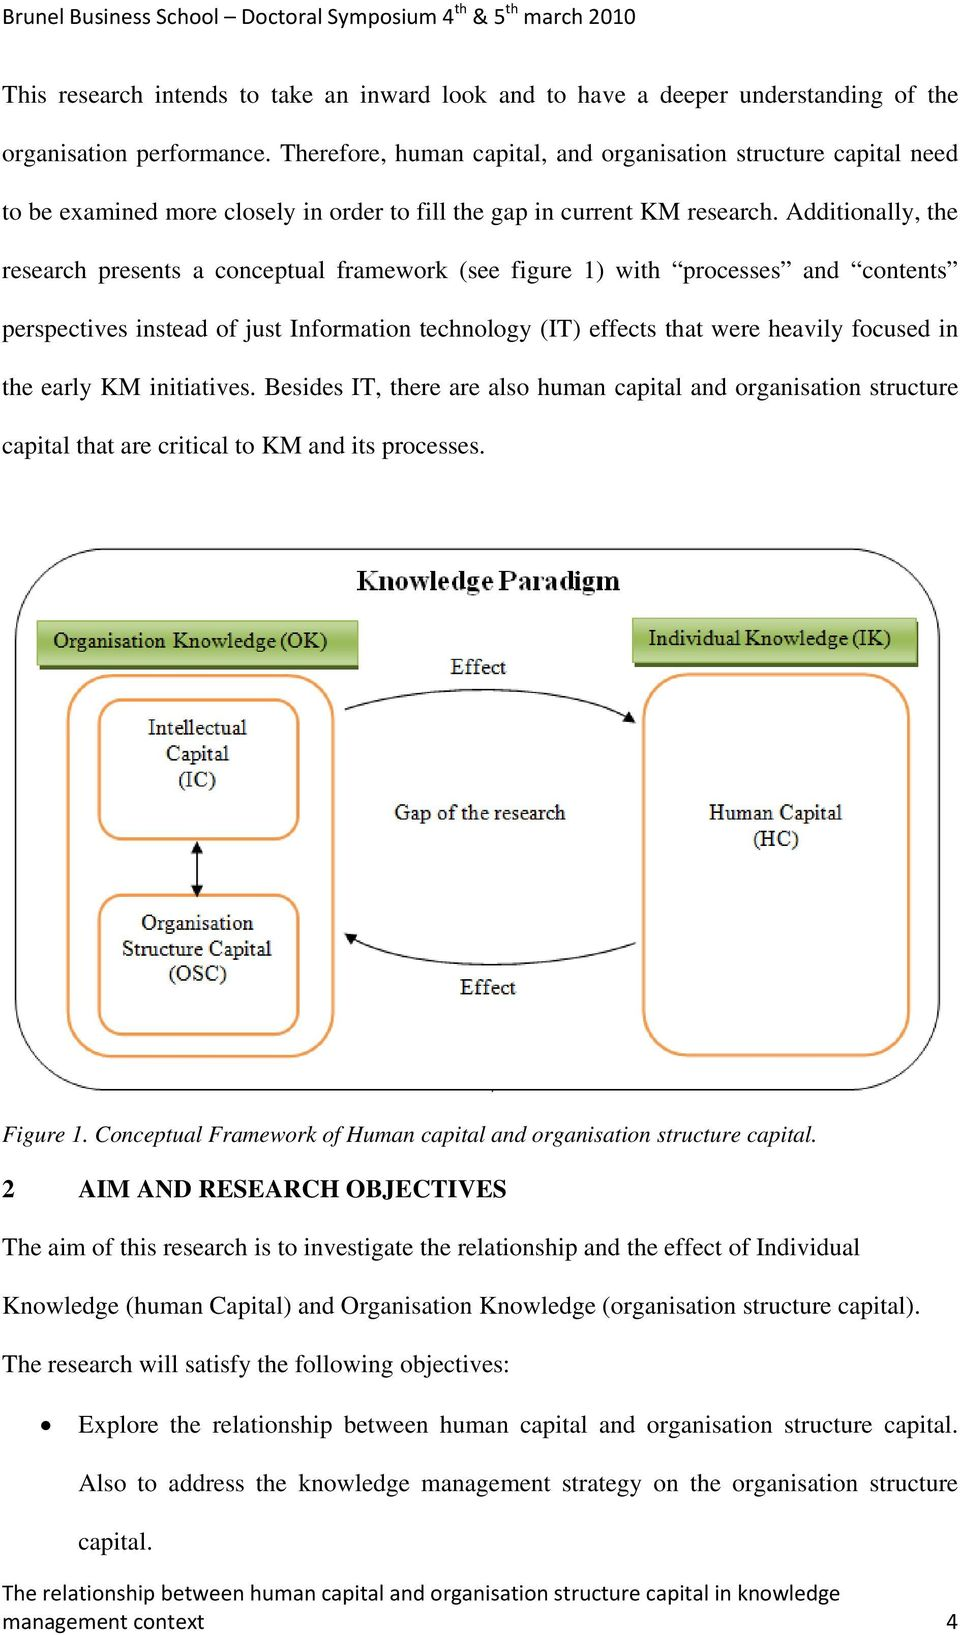 Additionally, the research presents a conceptual framework (see figure 1) with processes and contents perspectives instead of just Information technology (IT) effects that were heavily focused in the